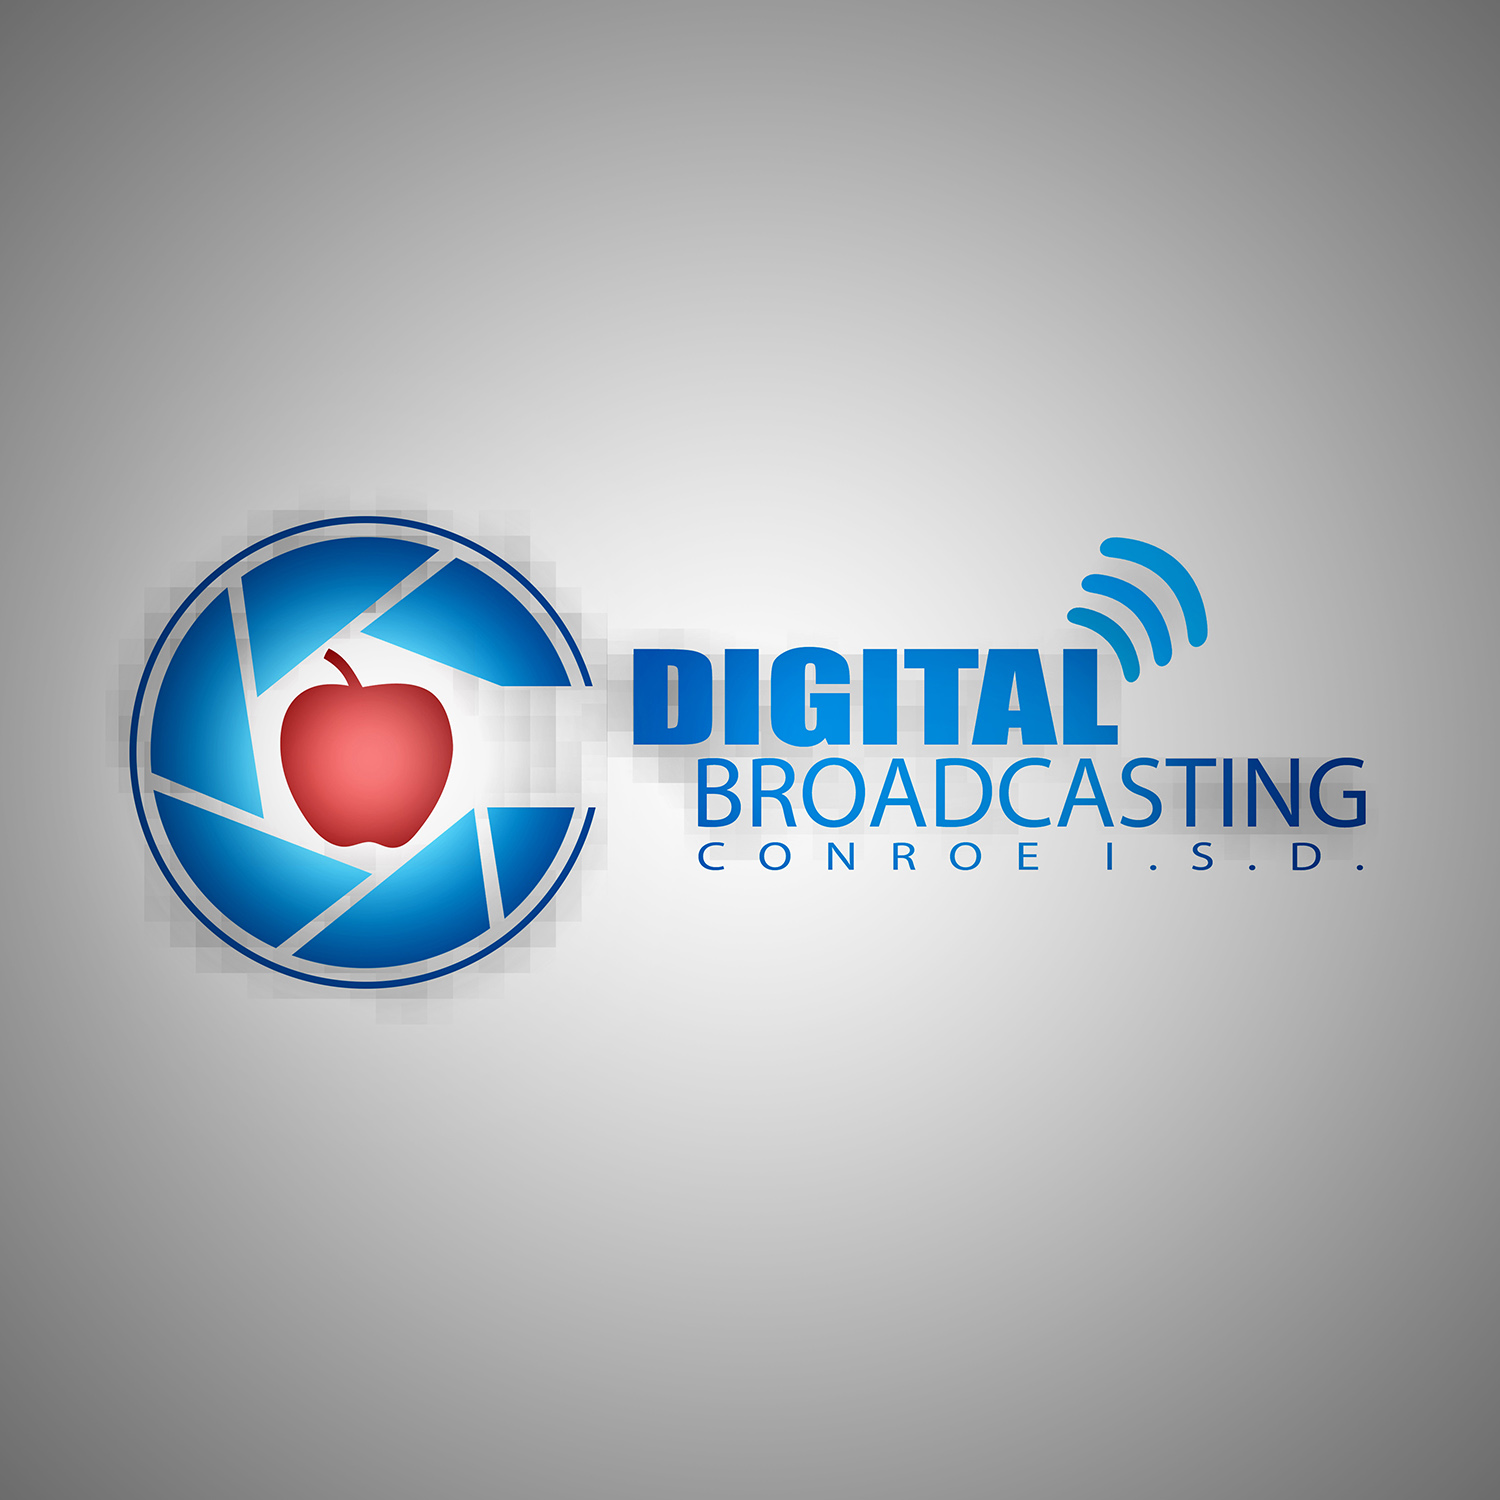 DigitalBroadcasting_Logo.jpg